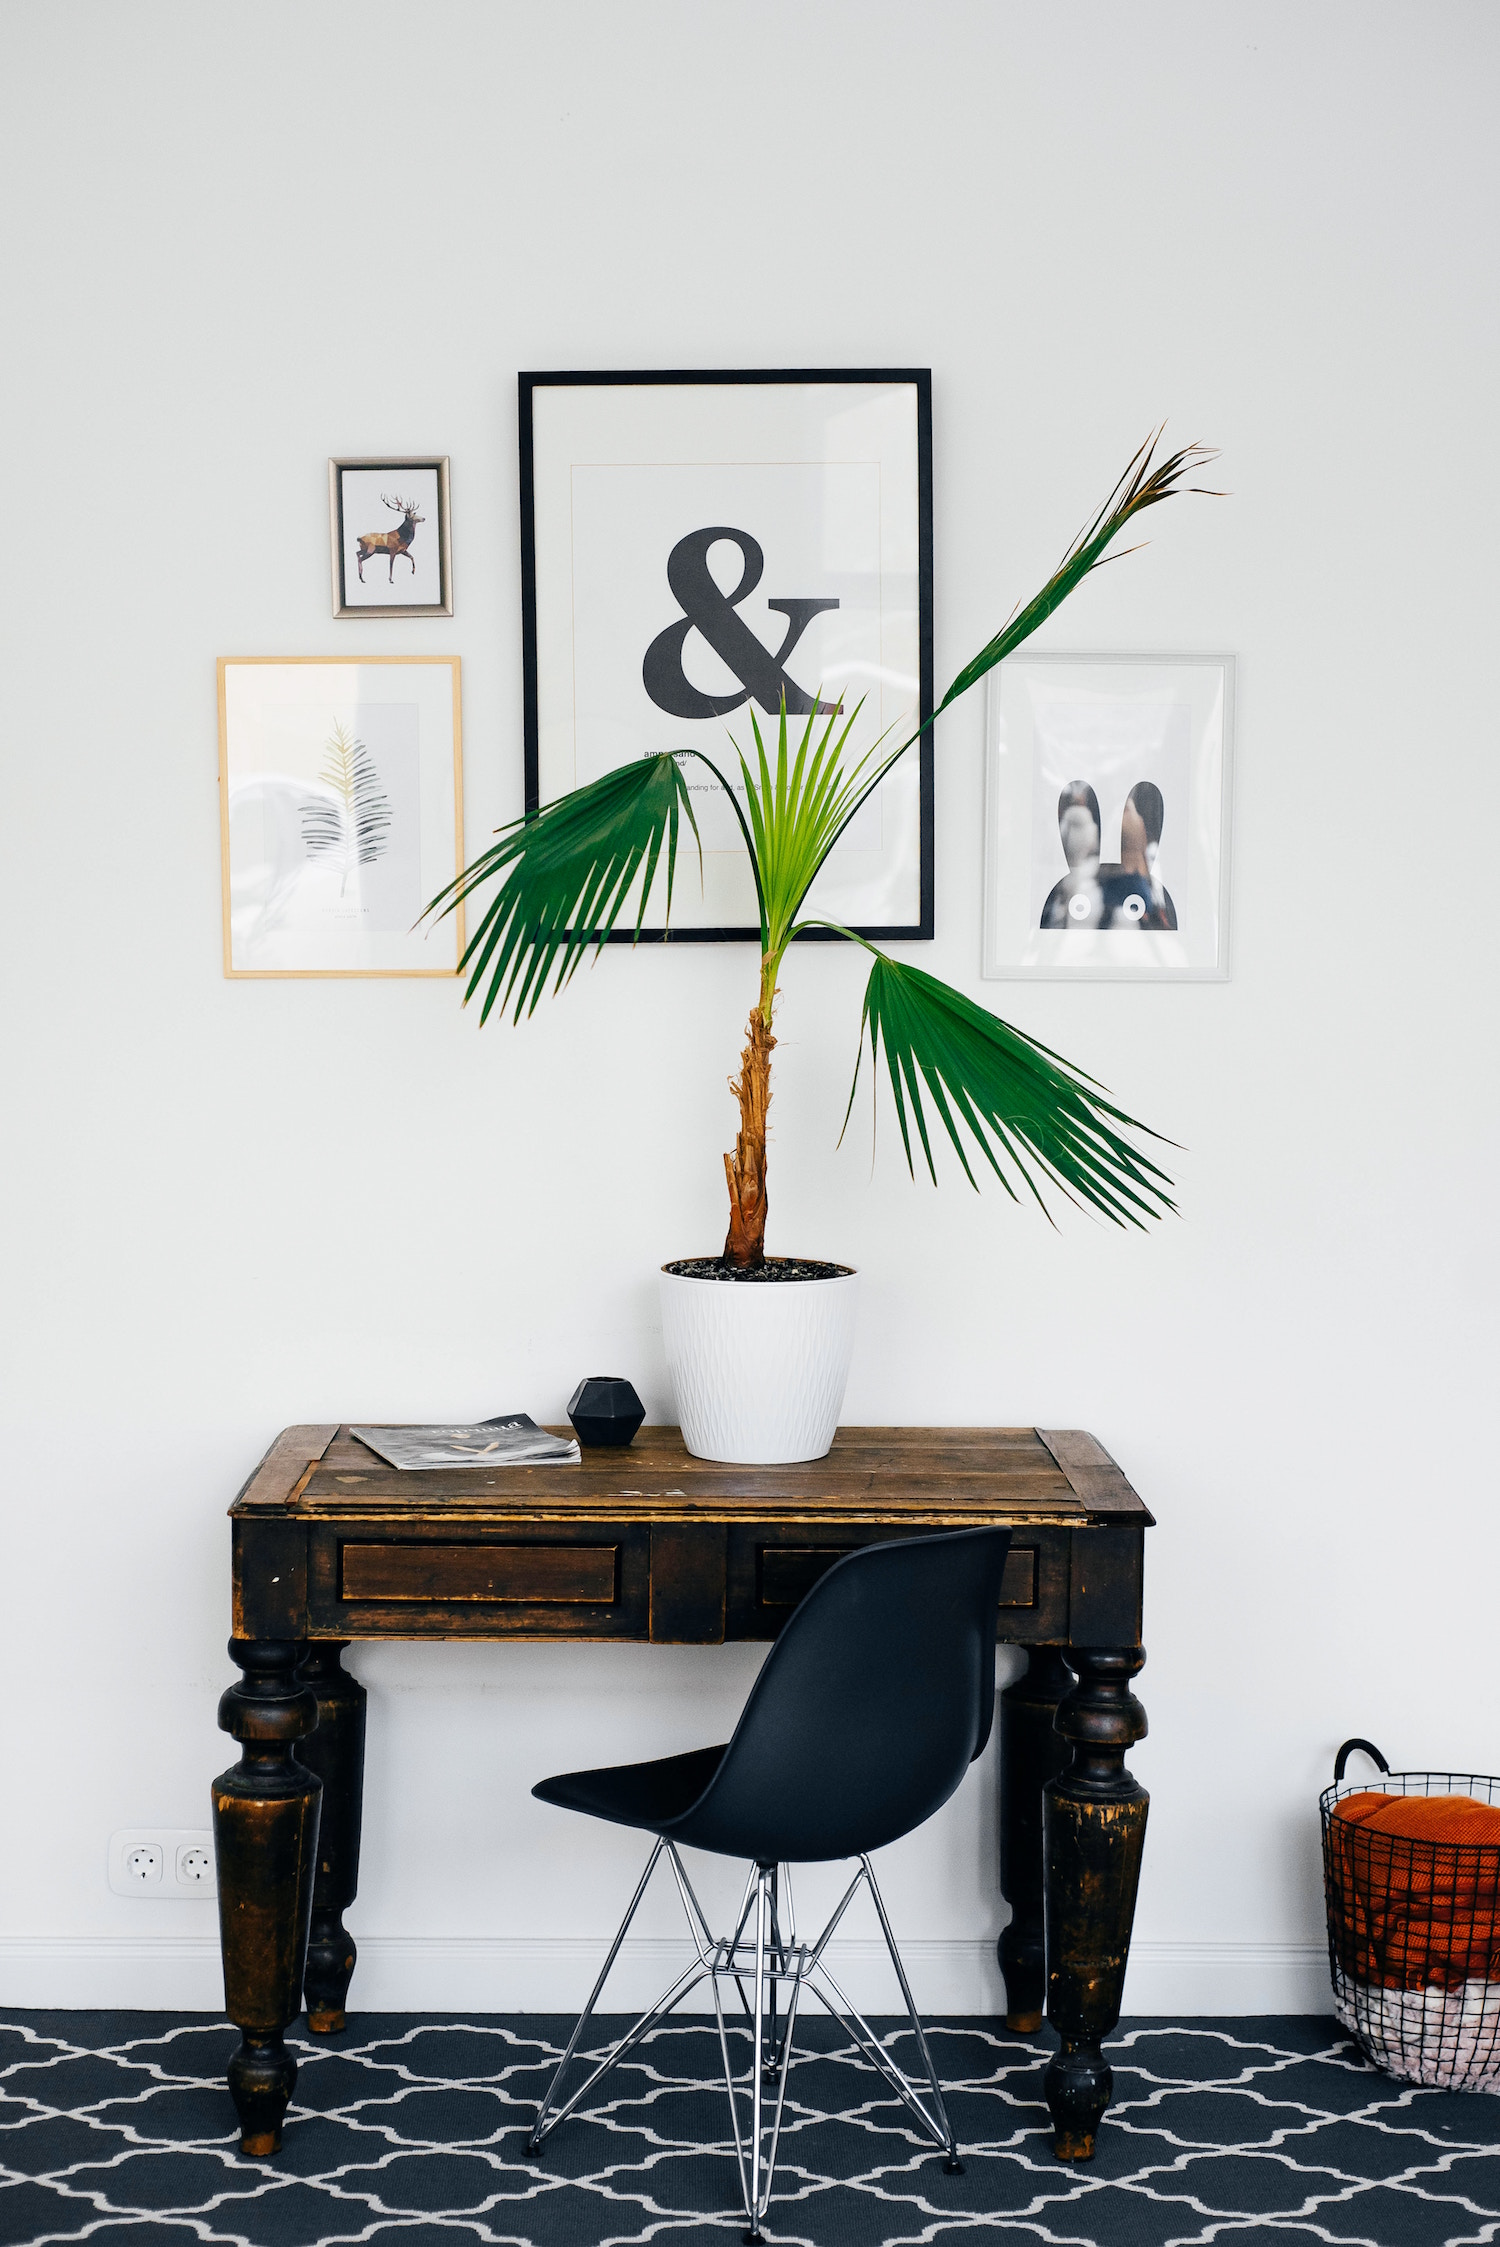 How to Make Your Home Full of Thoughtful Details